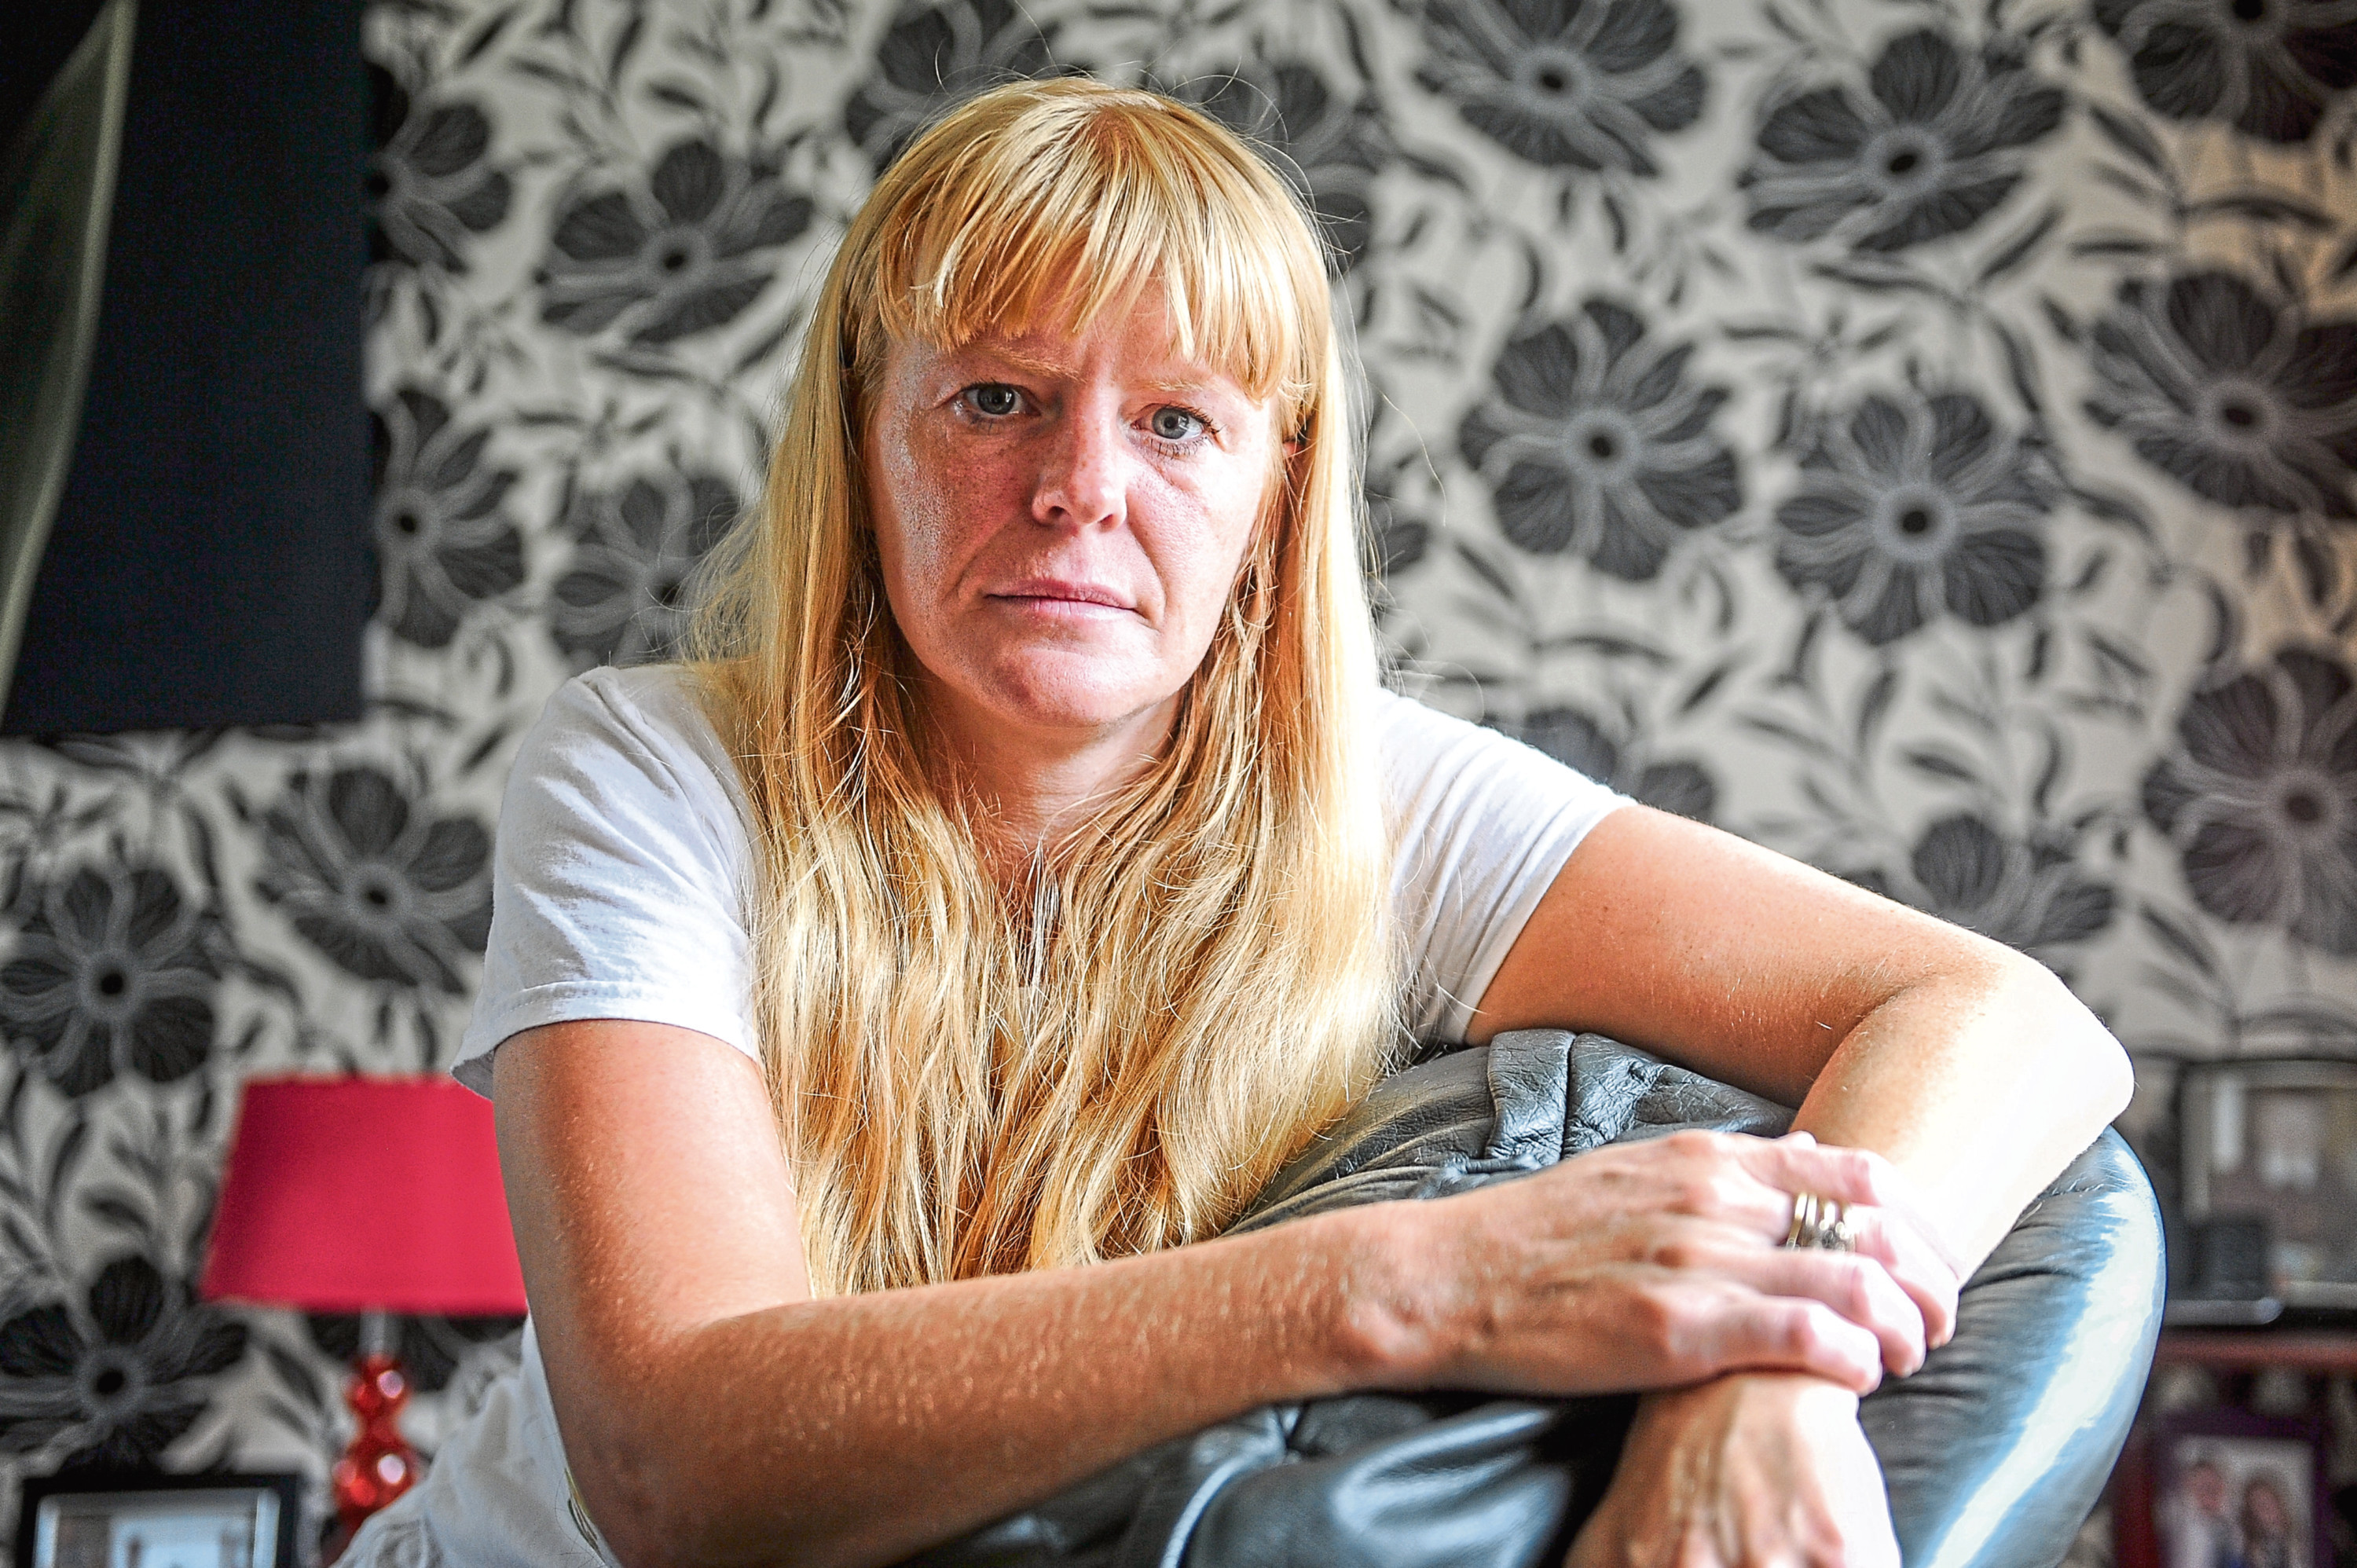 Ardler woman Rona Foy has defended Carseview following the documentary, saying she was never offered illegal drugs during her time at the centre.